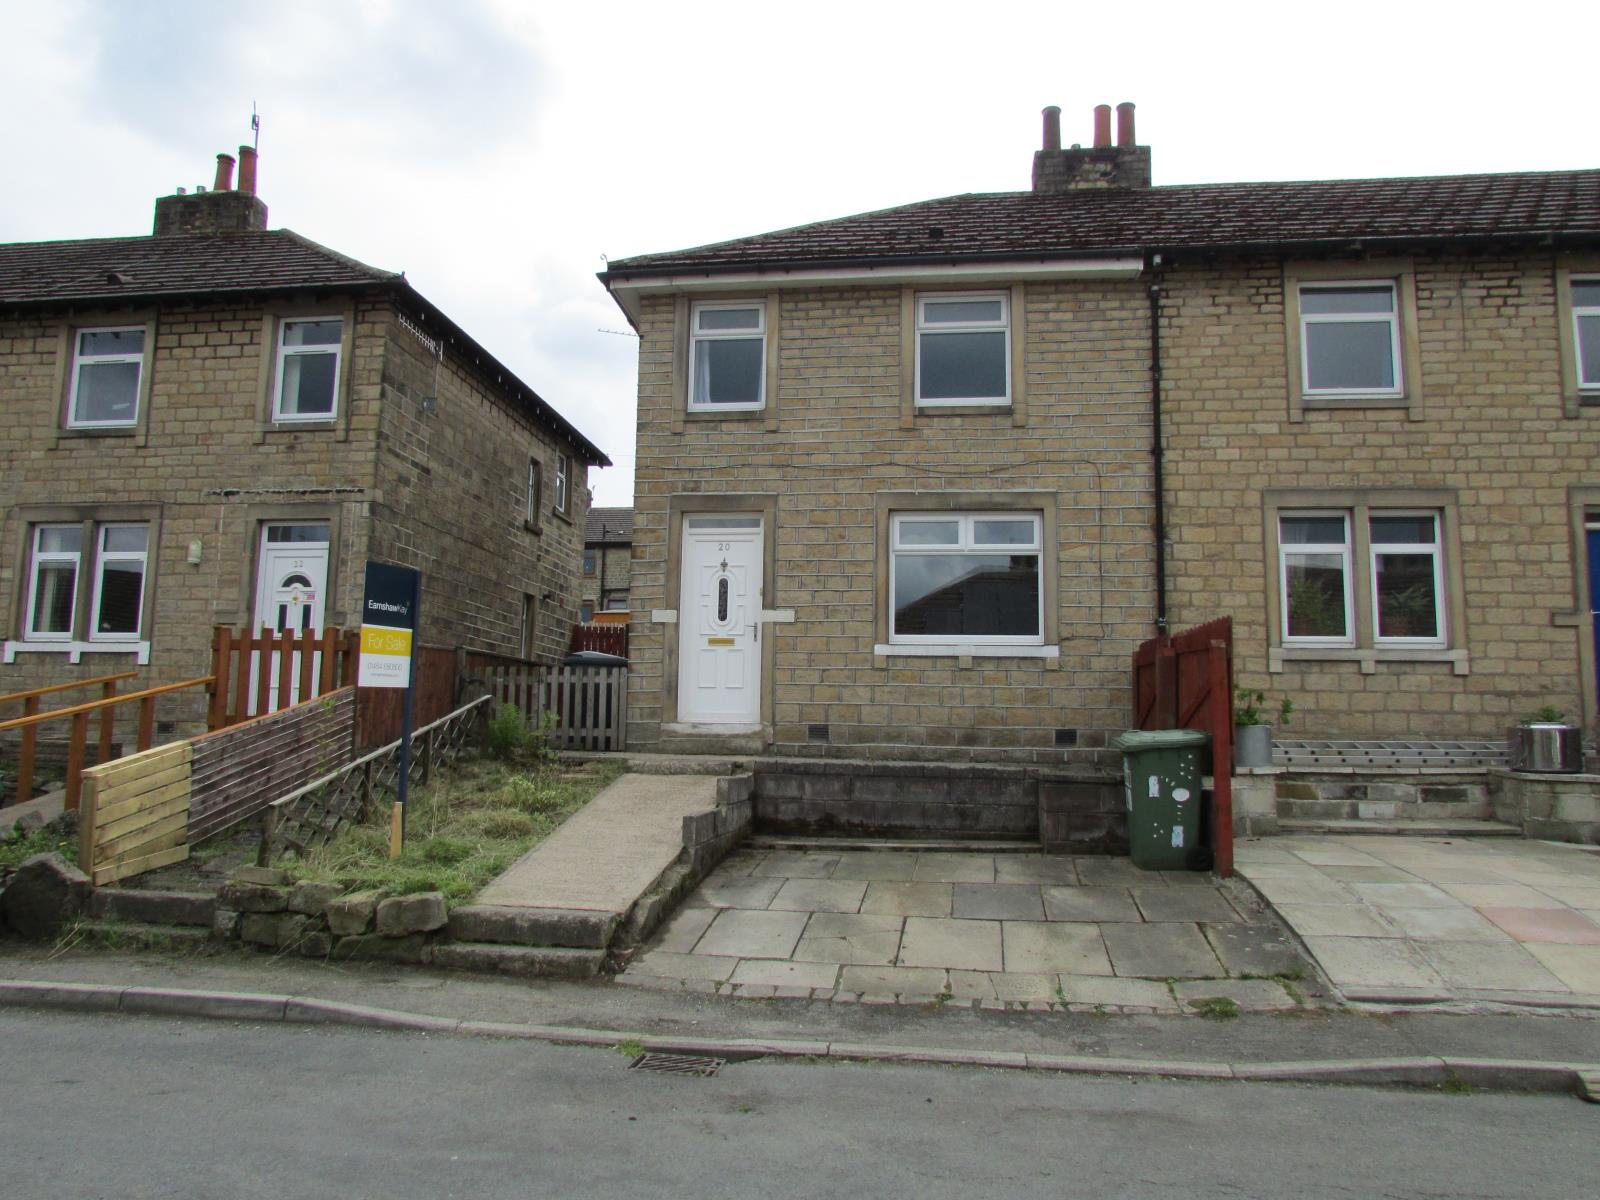 20 Elm Avenue, Thongsbridge, Holmfirth, HD9 7ST